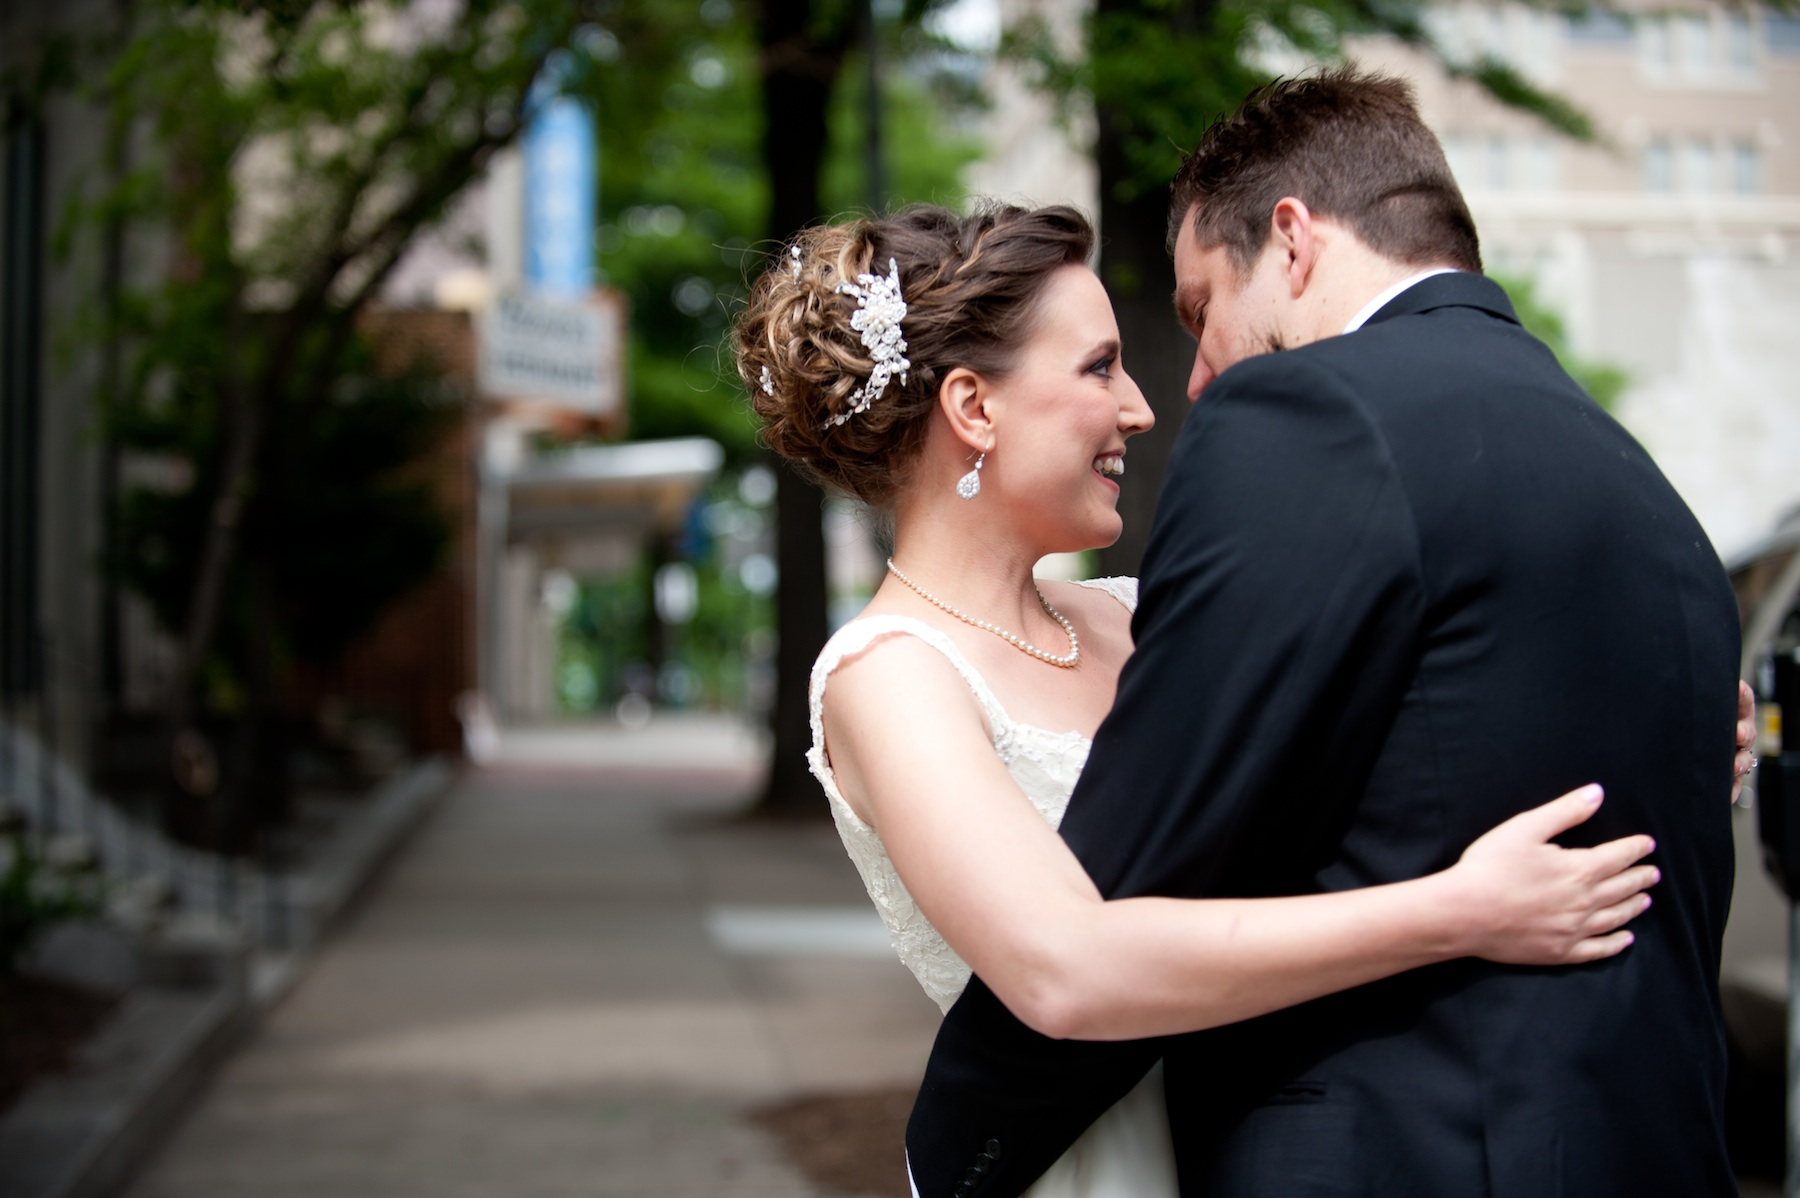 Wedding-photography-sneak-peek-elegant-real-wedding-bride-and-groom.original